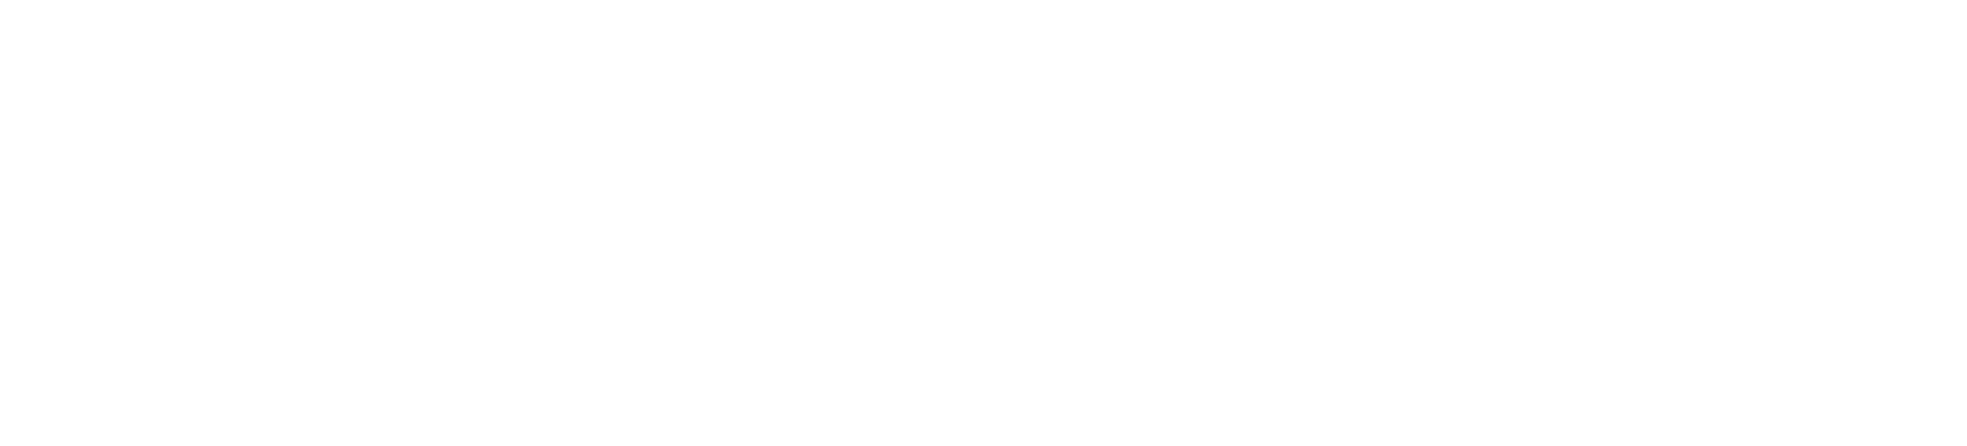 mrproperties